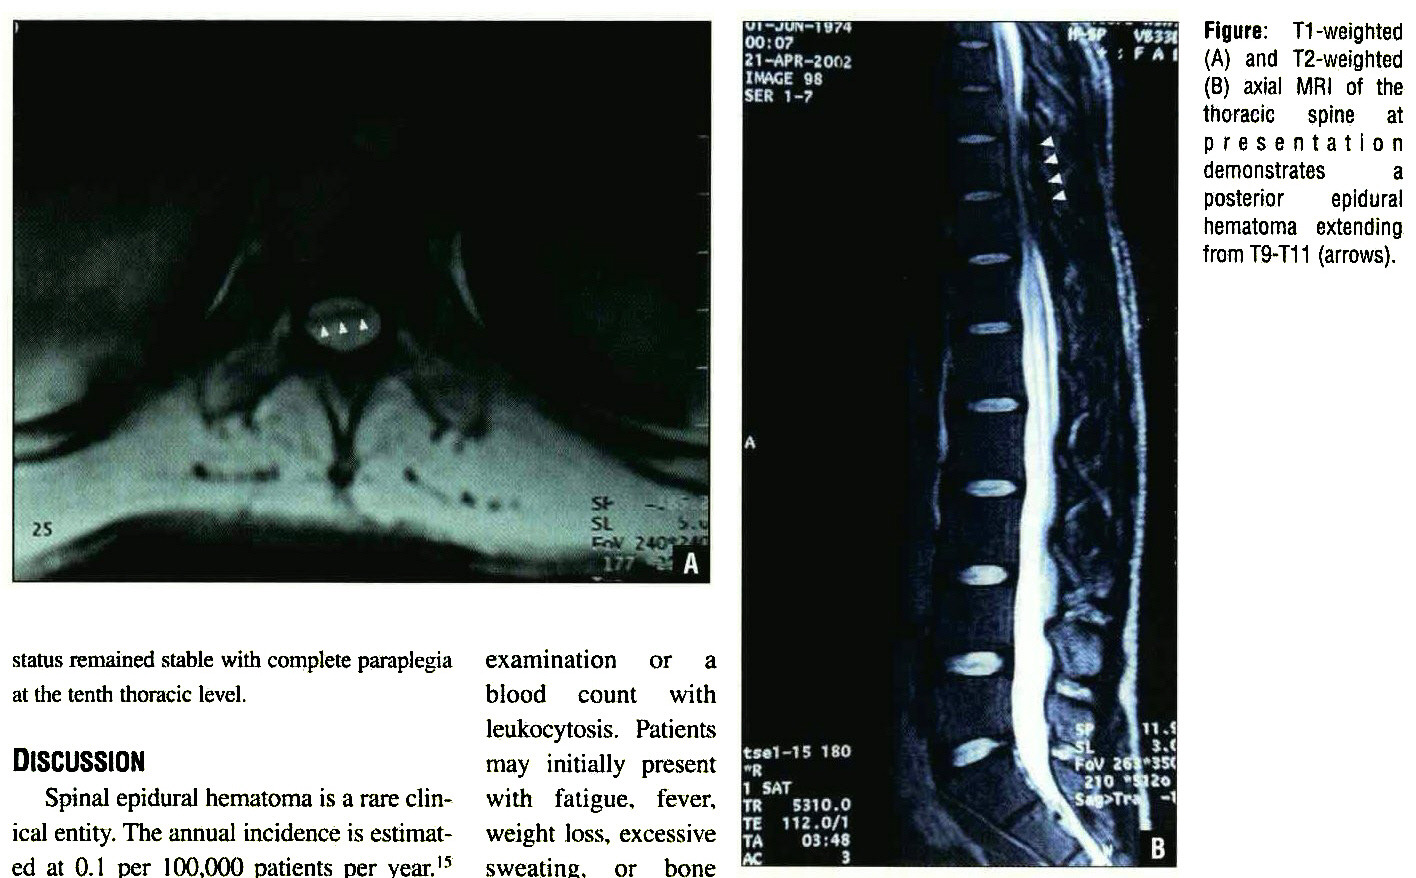 Figure: T1 -weighted (A) and T2-weighted (B) axial WlRI of the thoracic spine at presentation demonstrates a posterior epidural hematoma extending from T9-T1 1 (arrows).